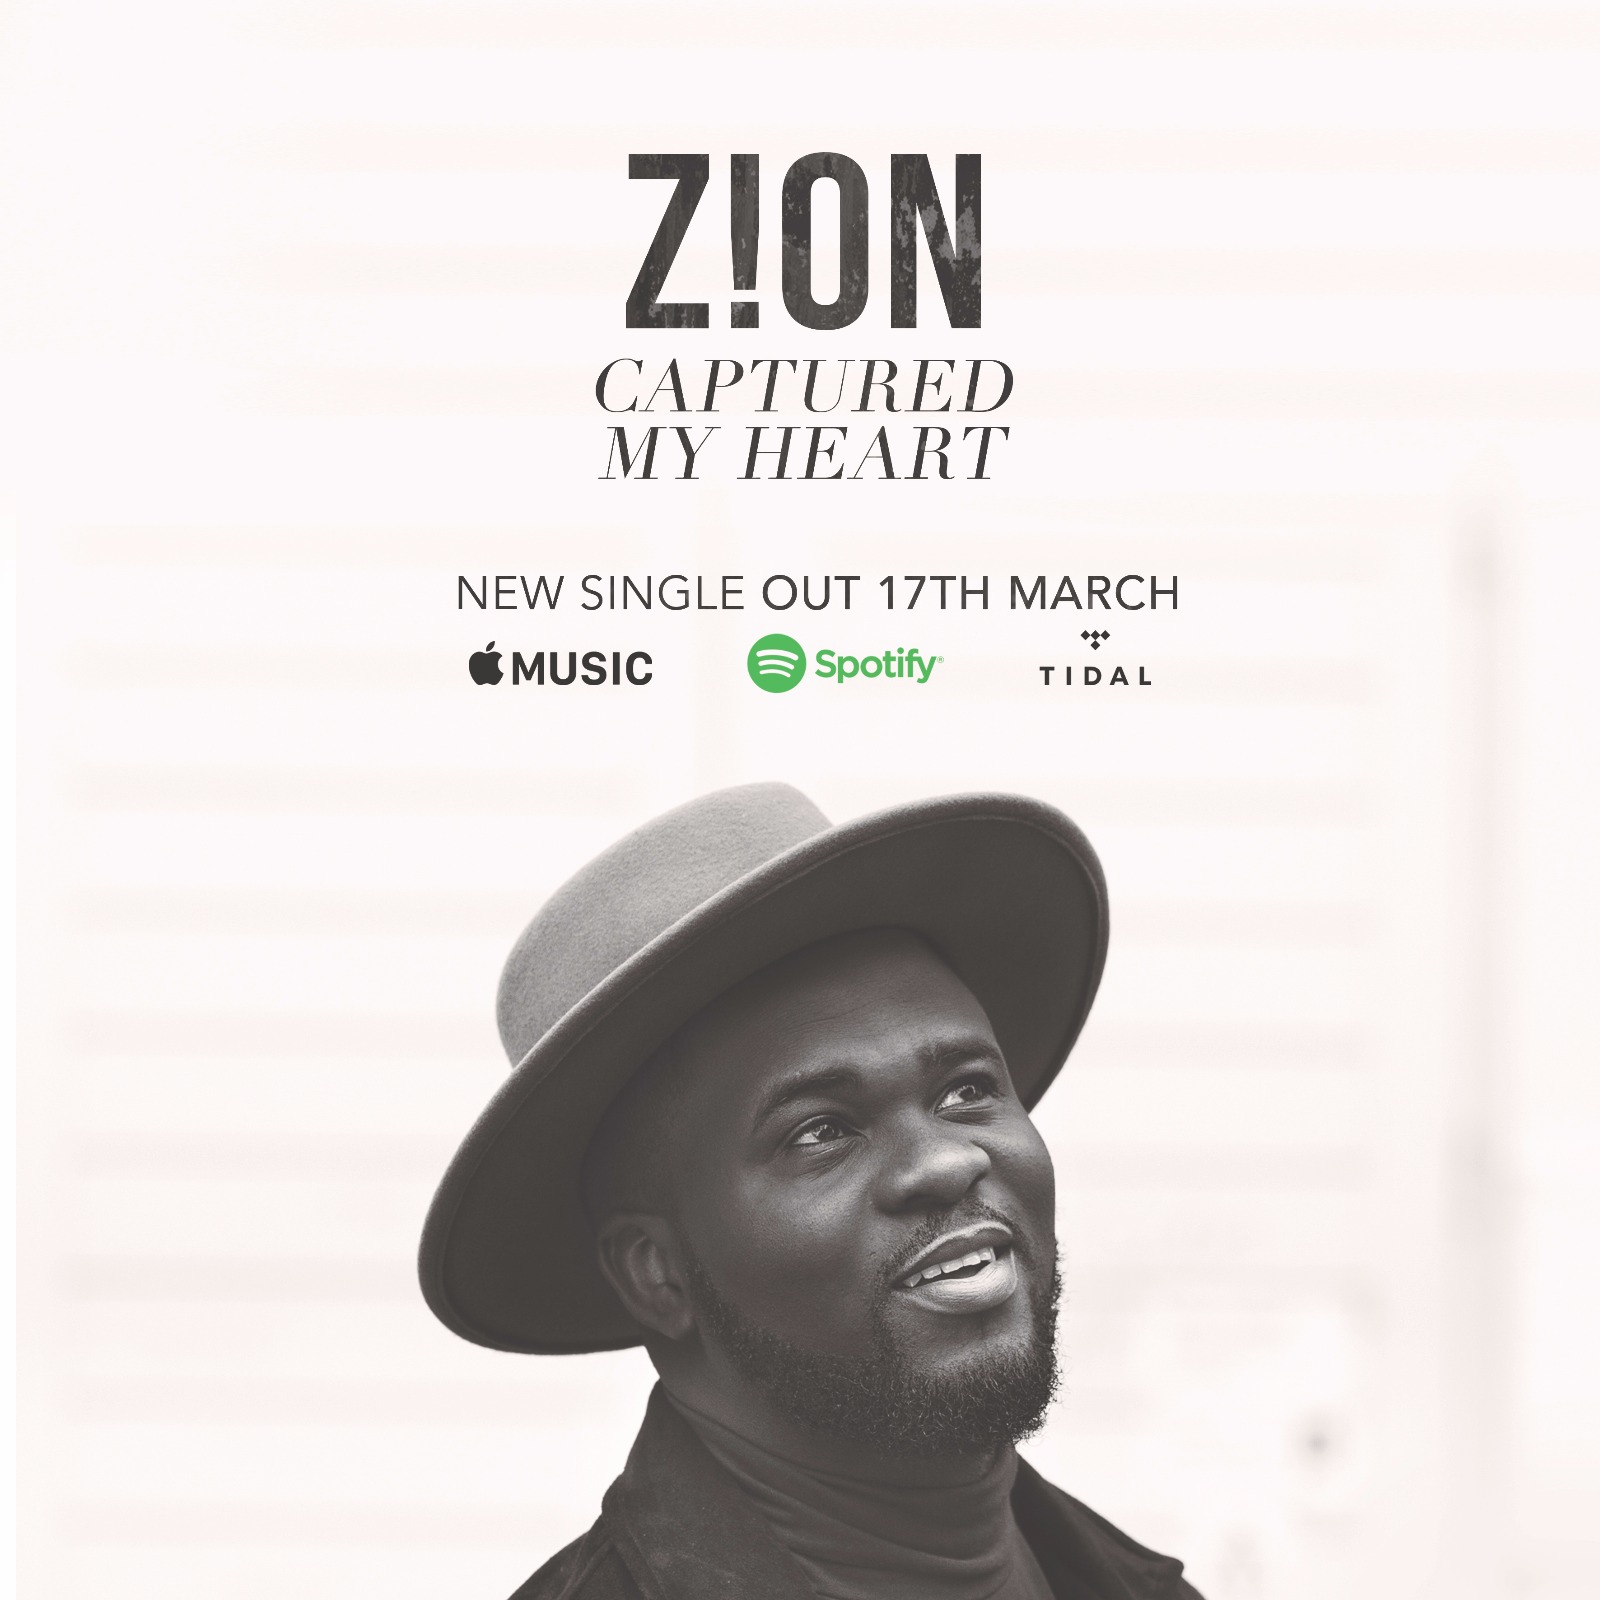 BBC Introducing Artist Zion Announces New Single 'Captured My Heart'